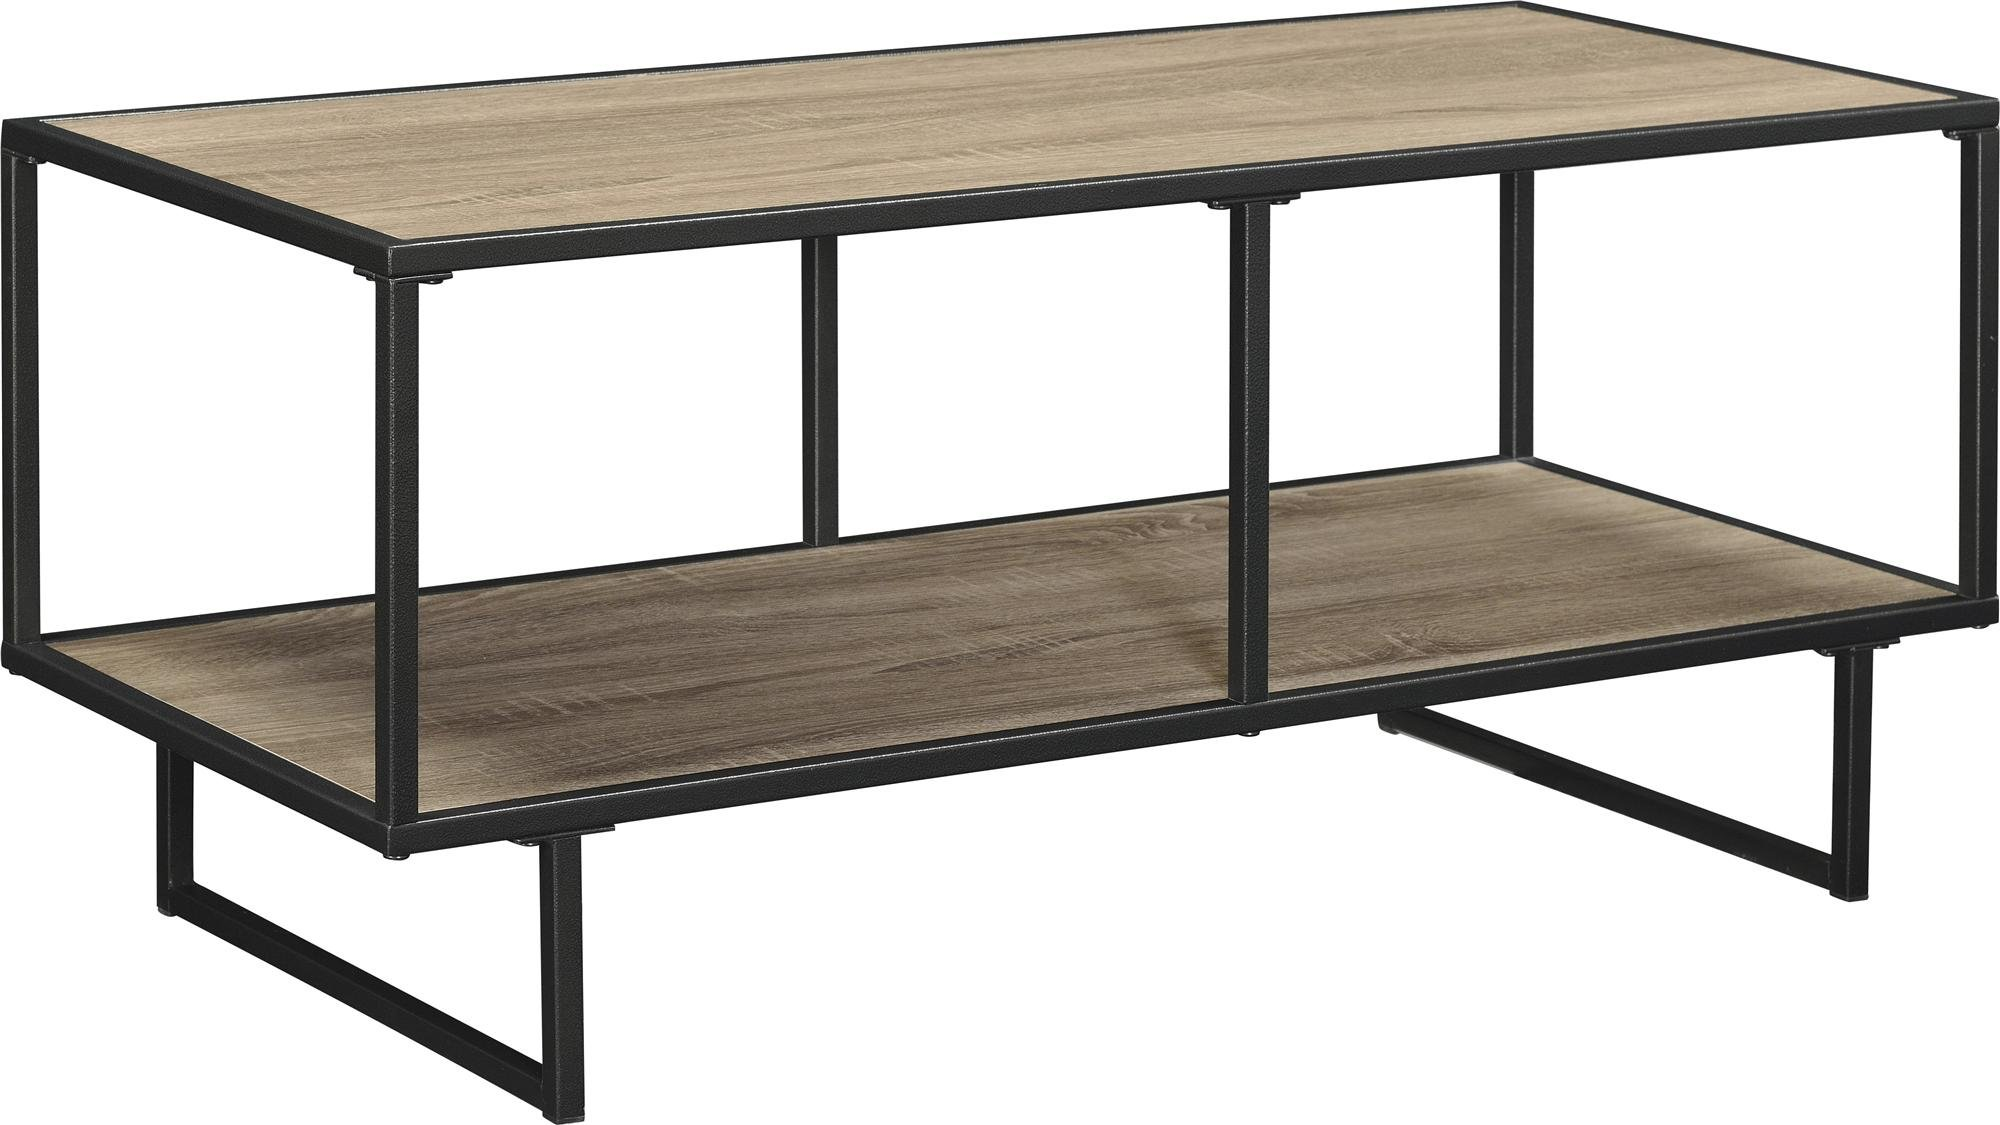 Ameriwood Home Emmett TV Stand/Coffee Table for TVs up to 42'' wide, Weathered Oak